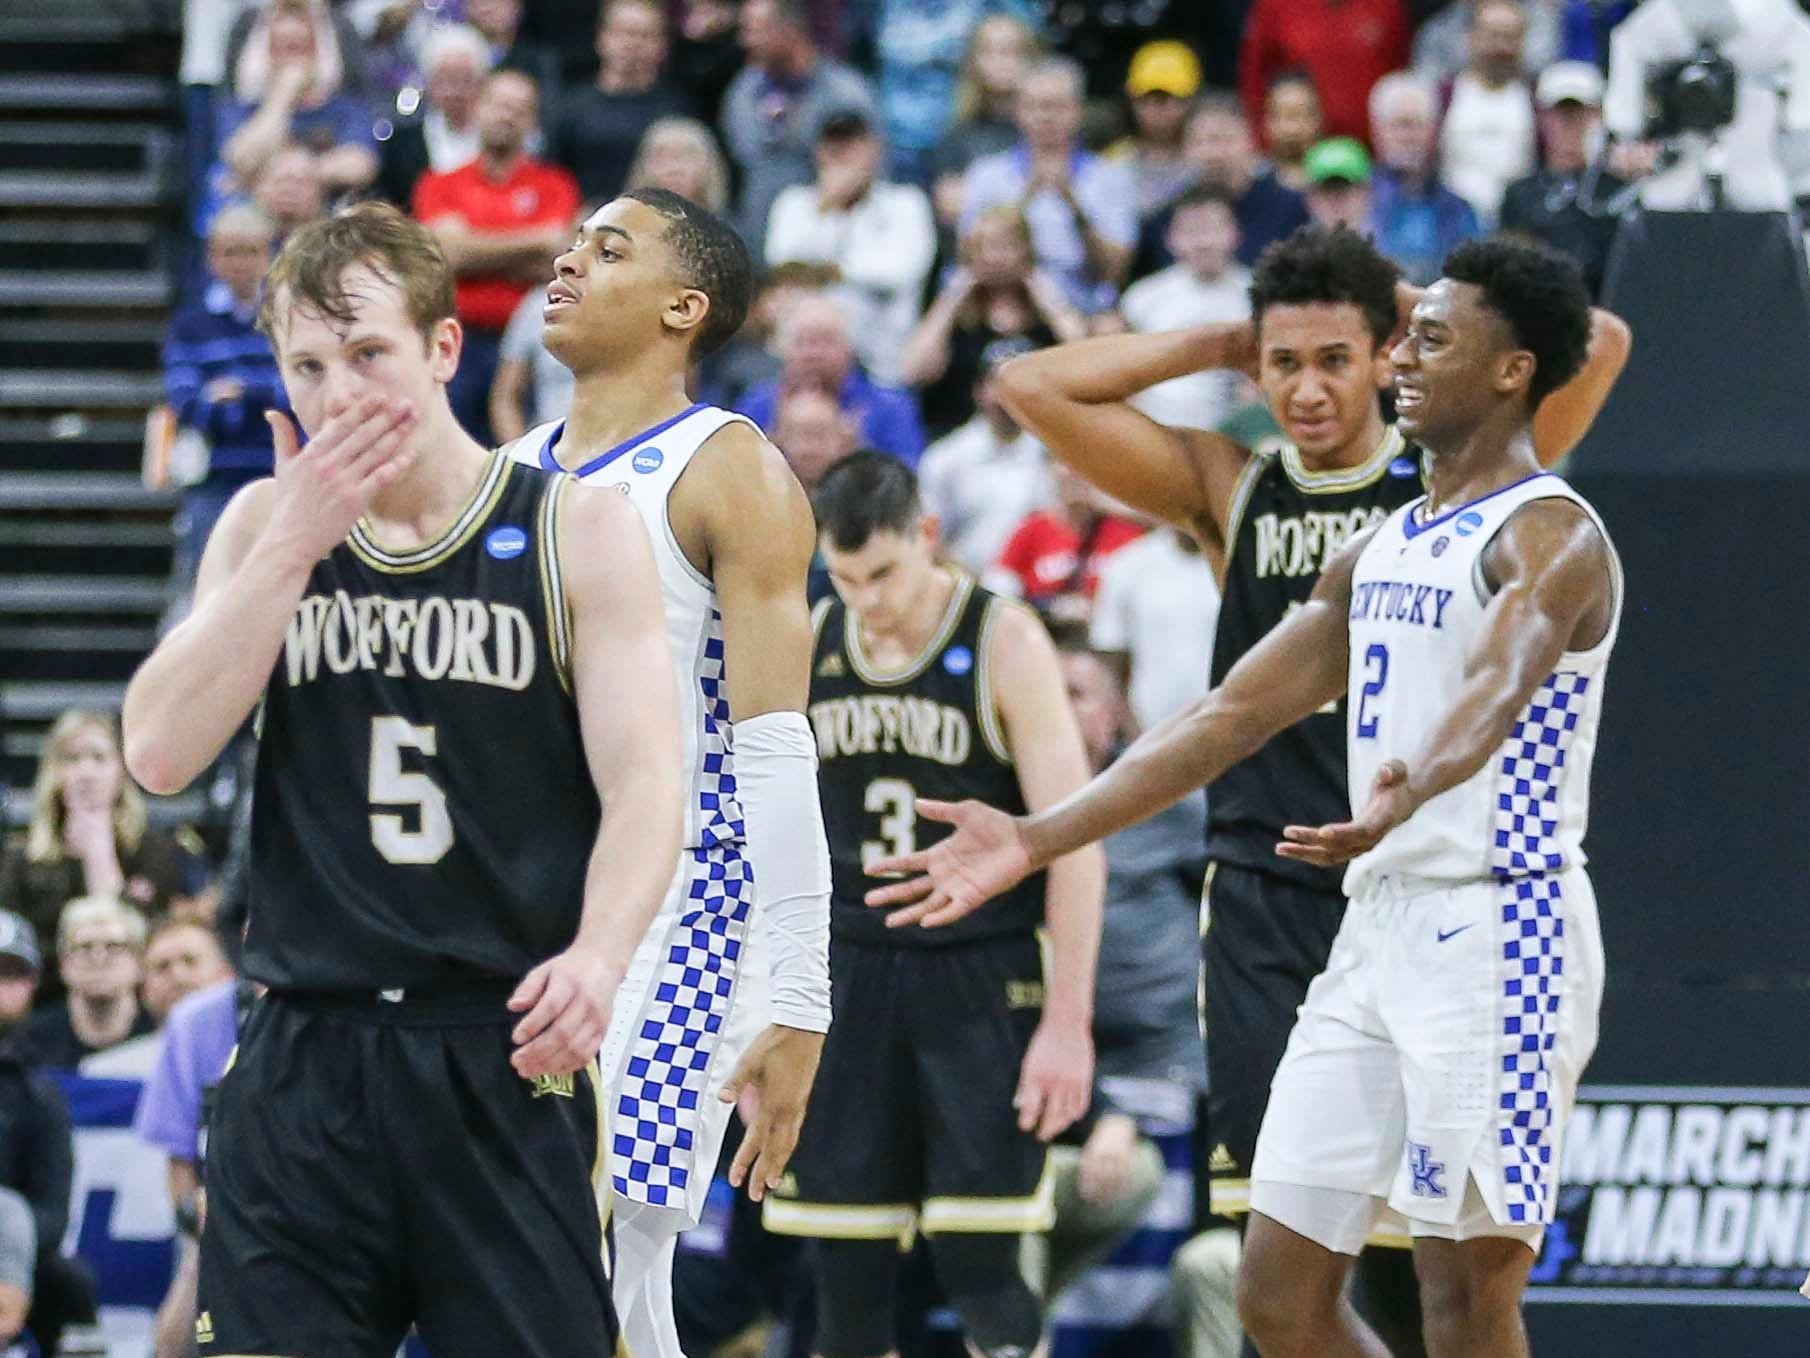 Kentucky players celebrate after the Wildcats beat a tenacious Wofford 62-56 in the second round game of the 2019 NCAA tournament in Jacksonville, Fla. March 23, 2019